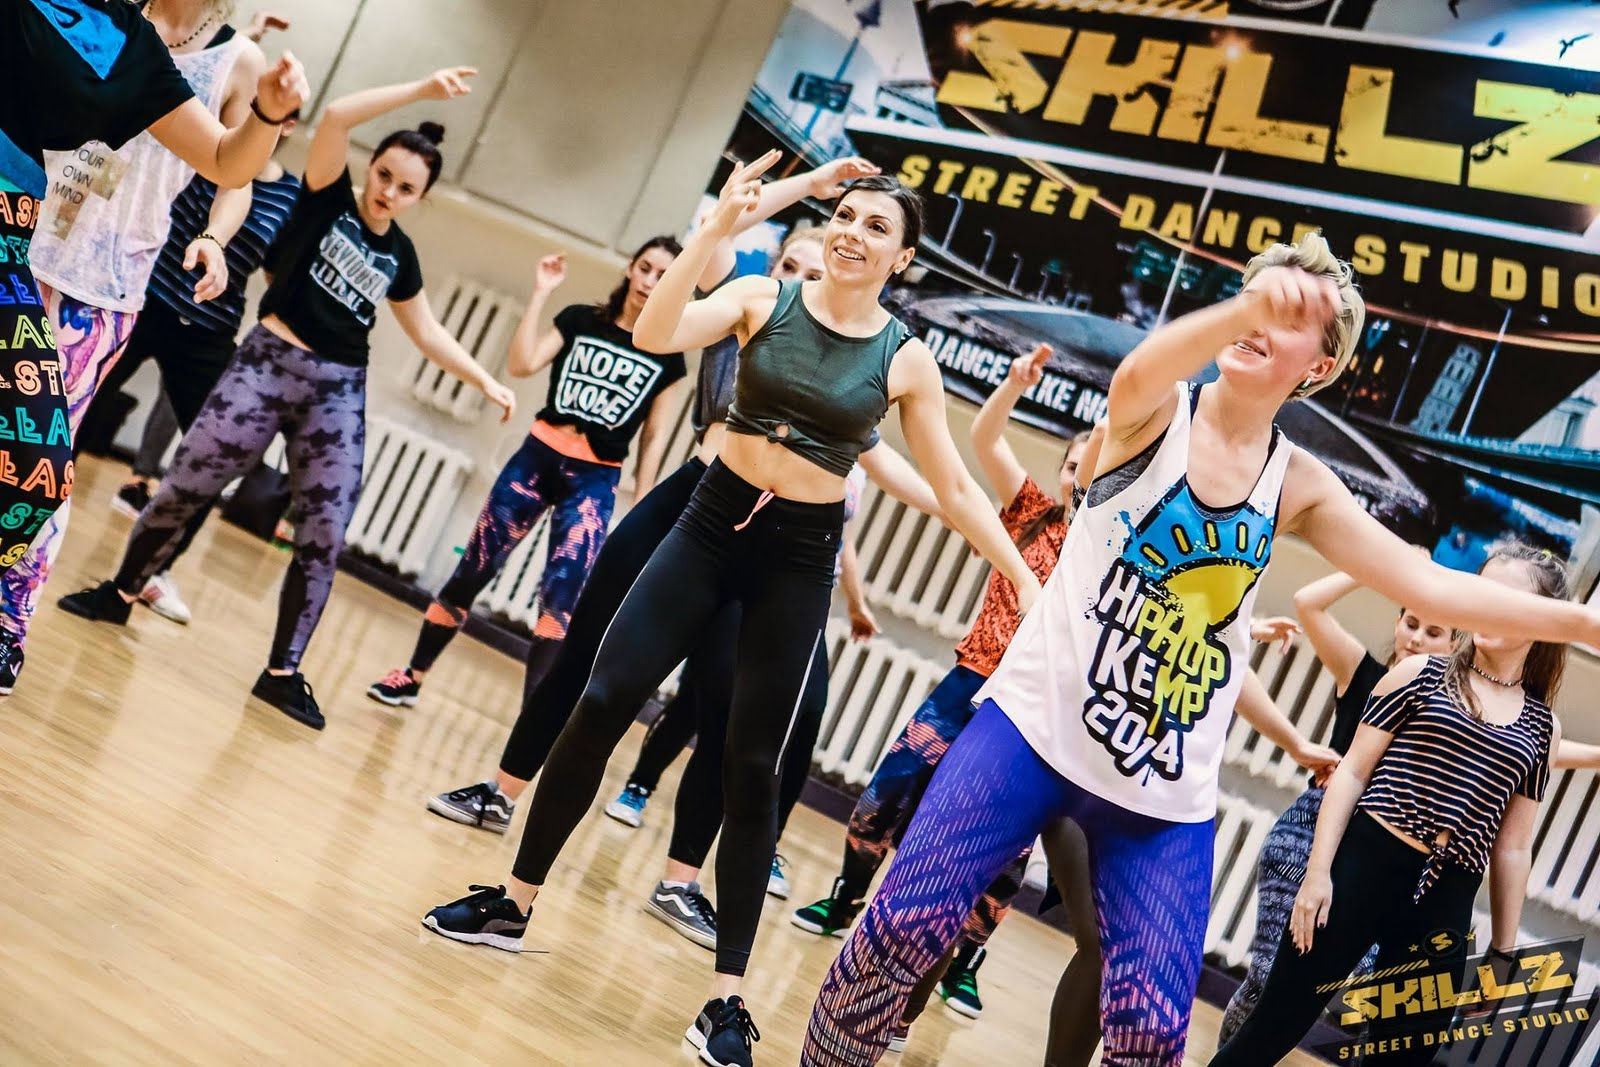 Dancehall workshop with Jiggy (France) - 26.jpg